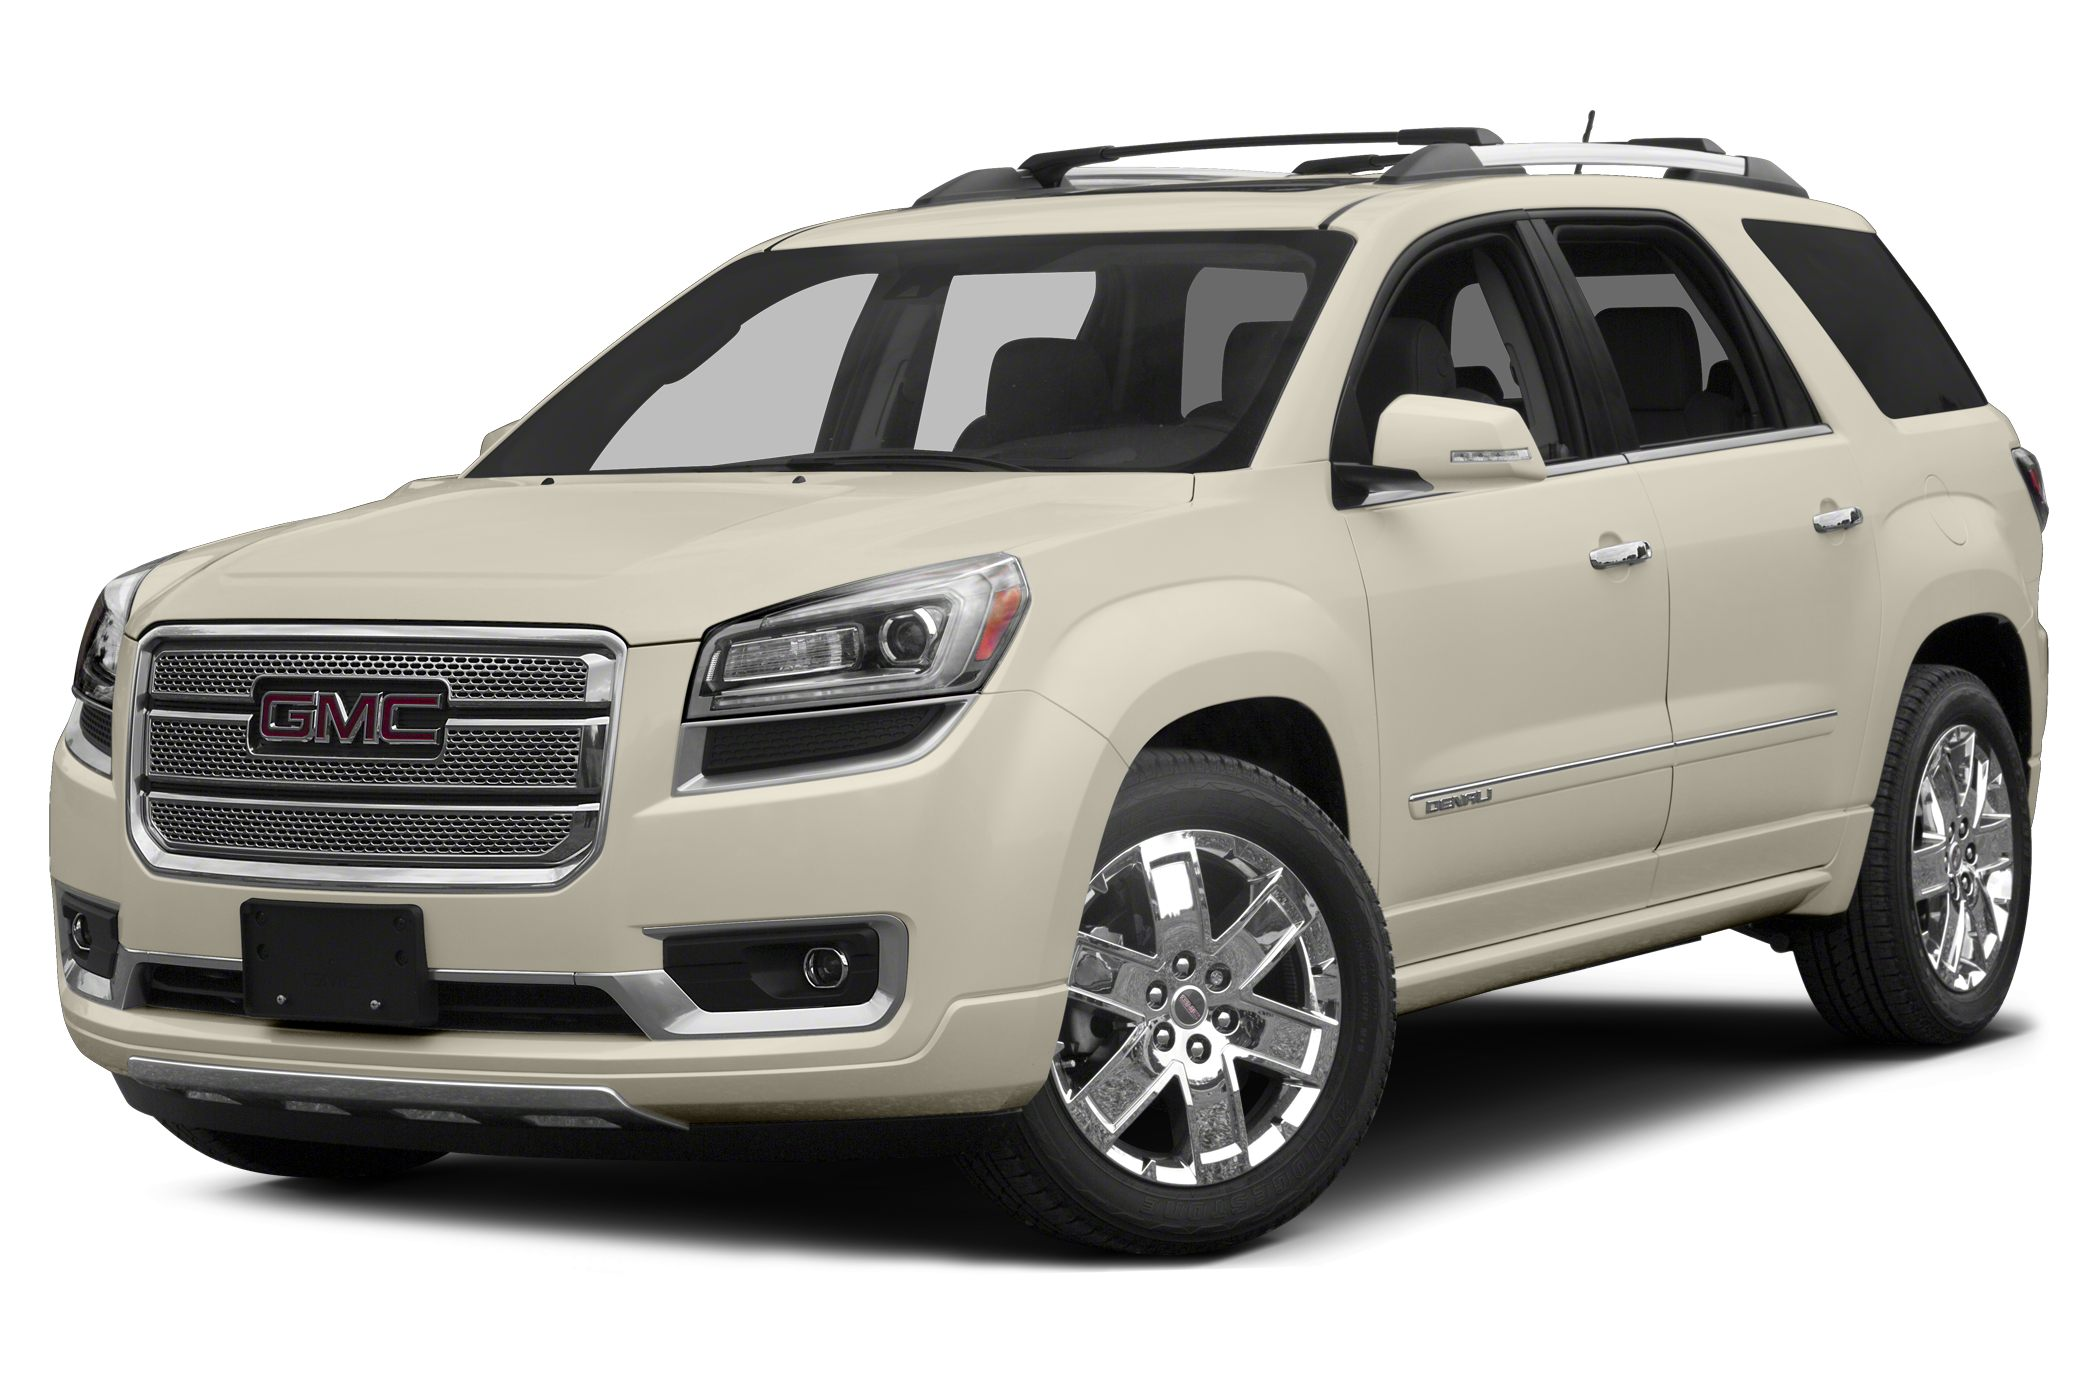 2015 GMC Acadia Denali SUV for sale in Pampa for $51,610 with 0 miles.